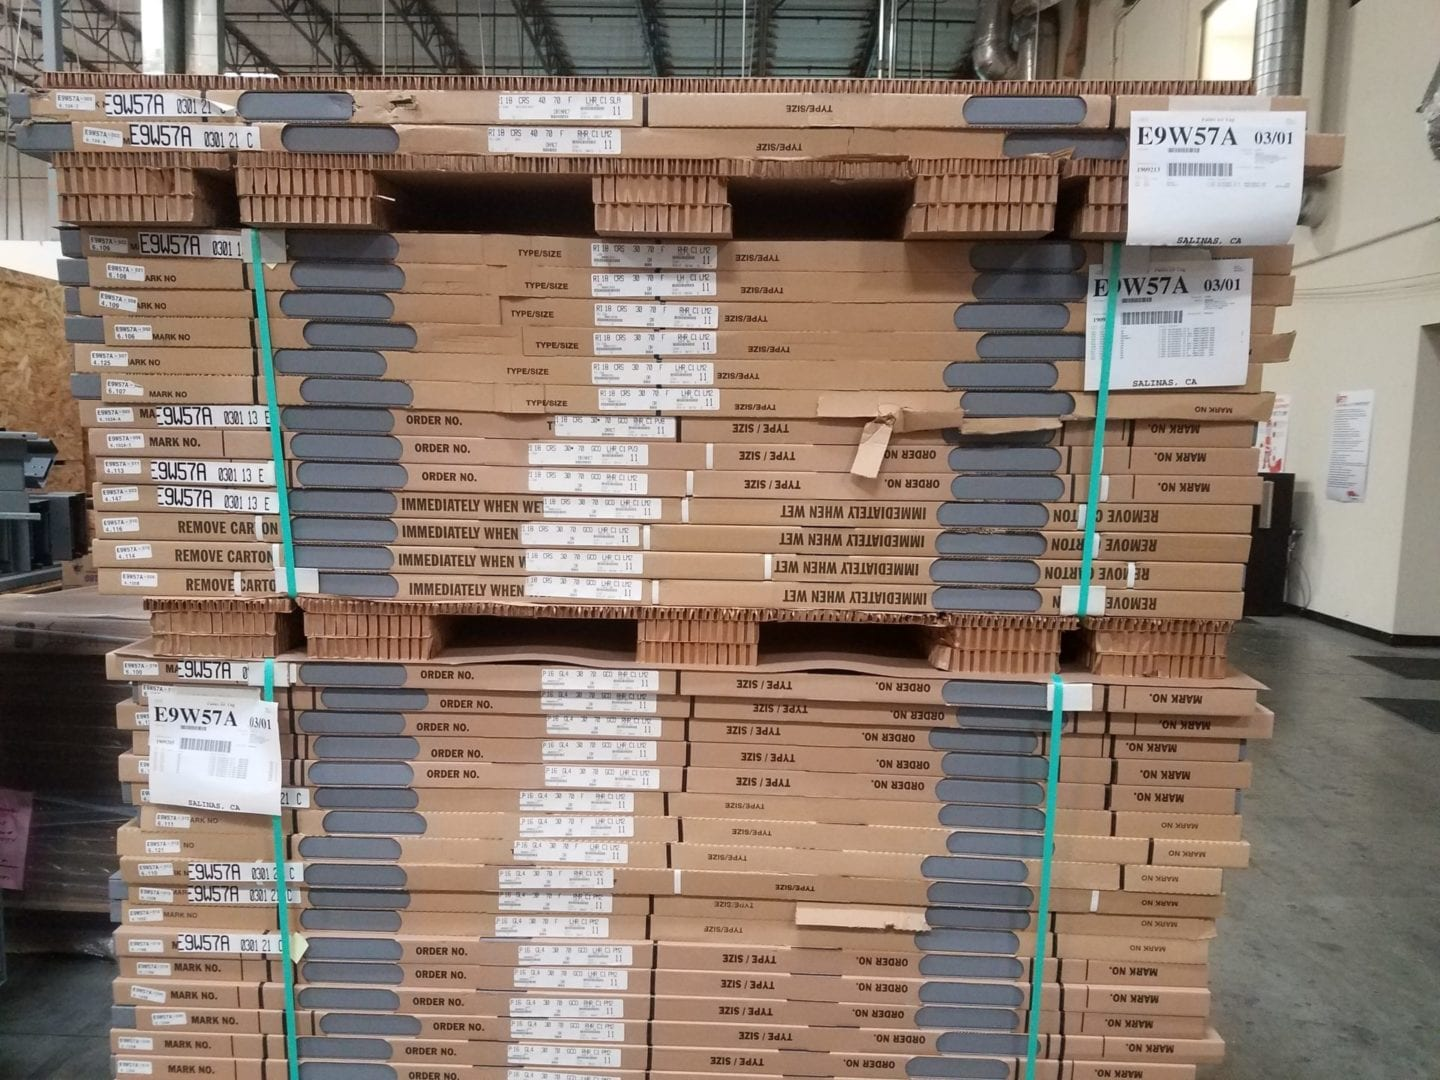 Stack of Doors in a Warehouse